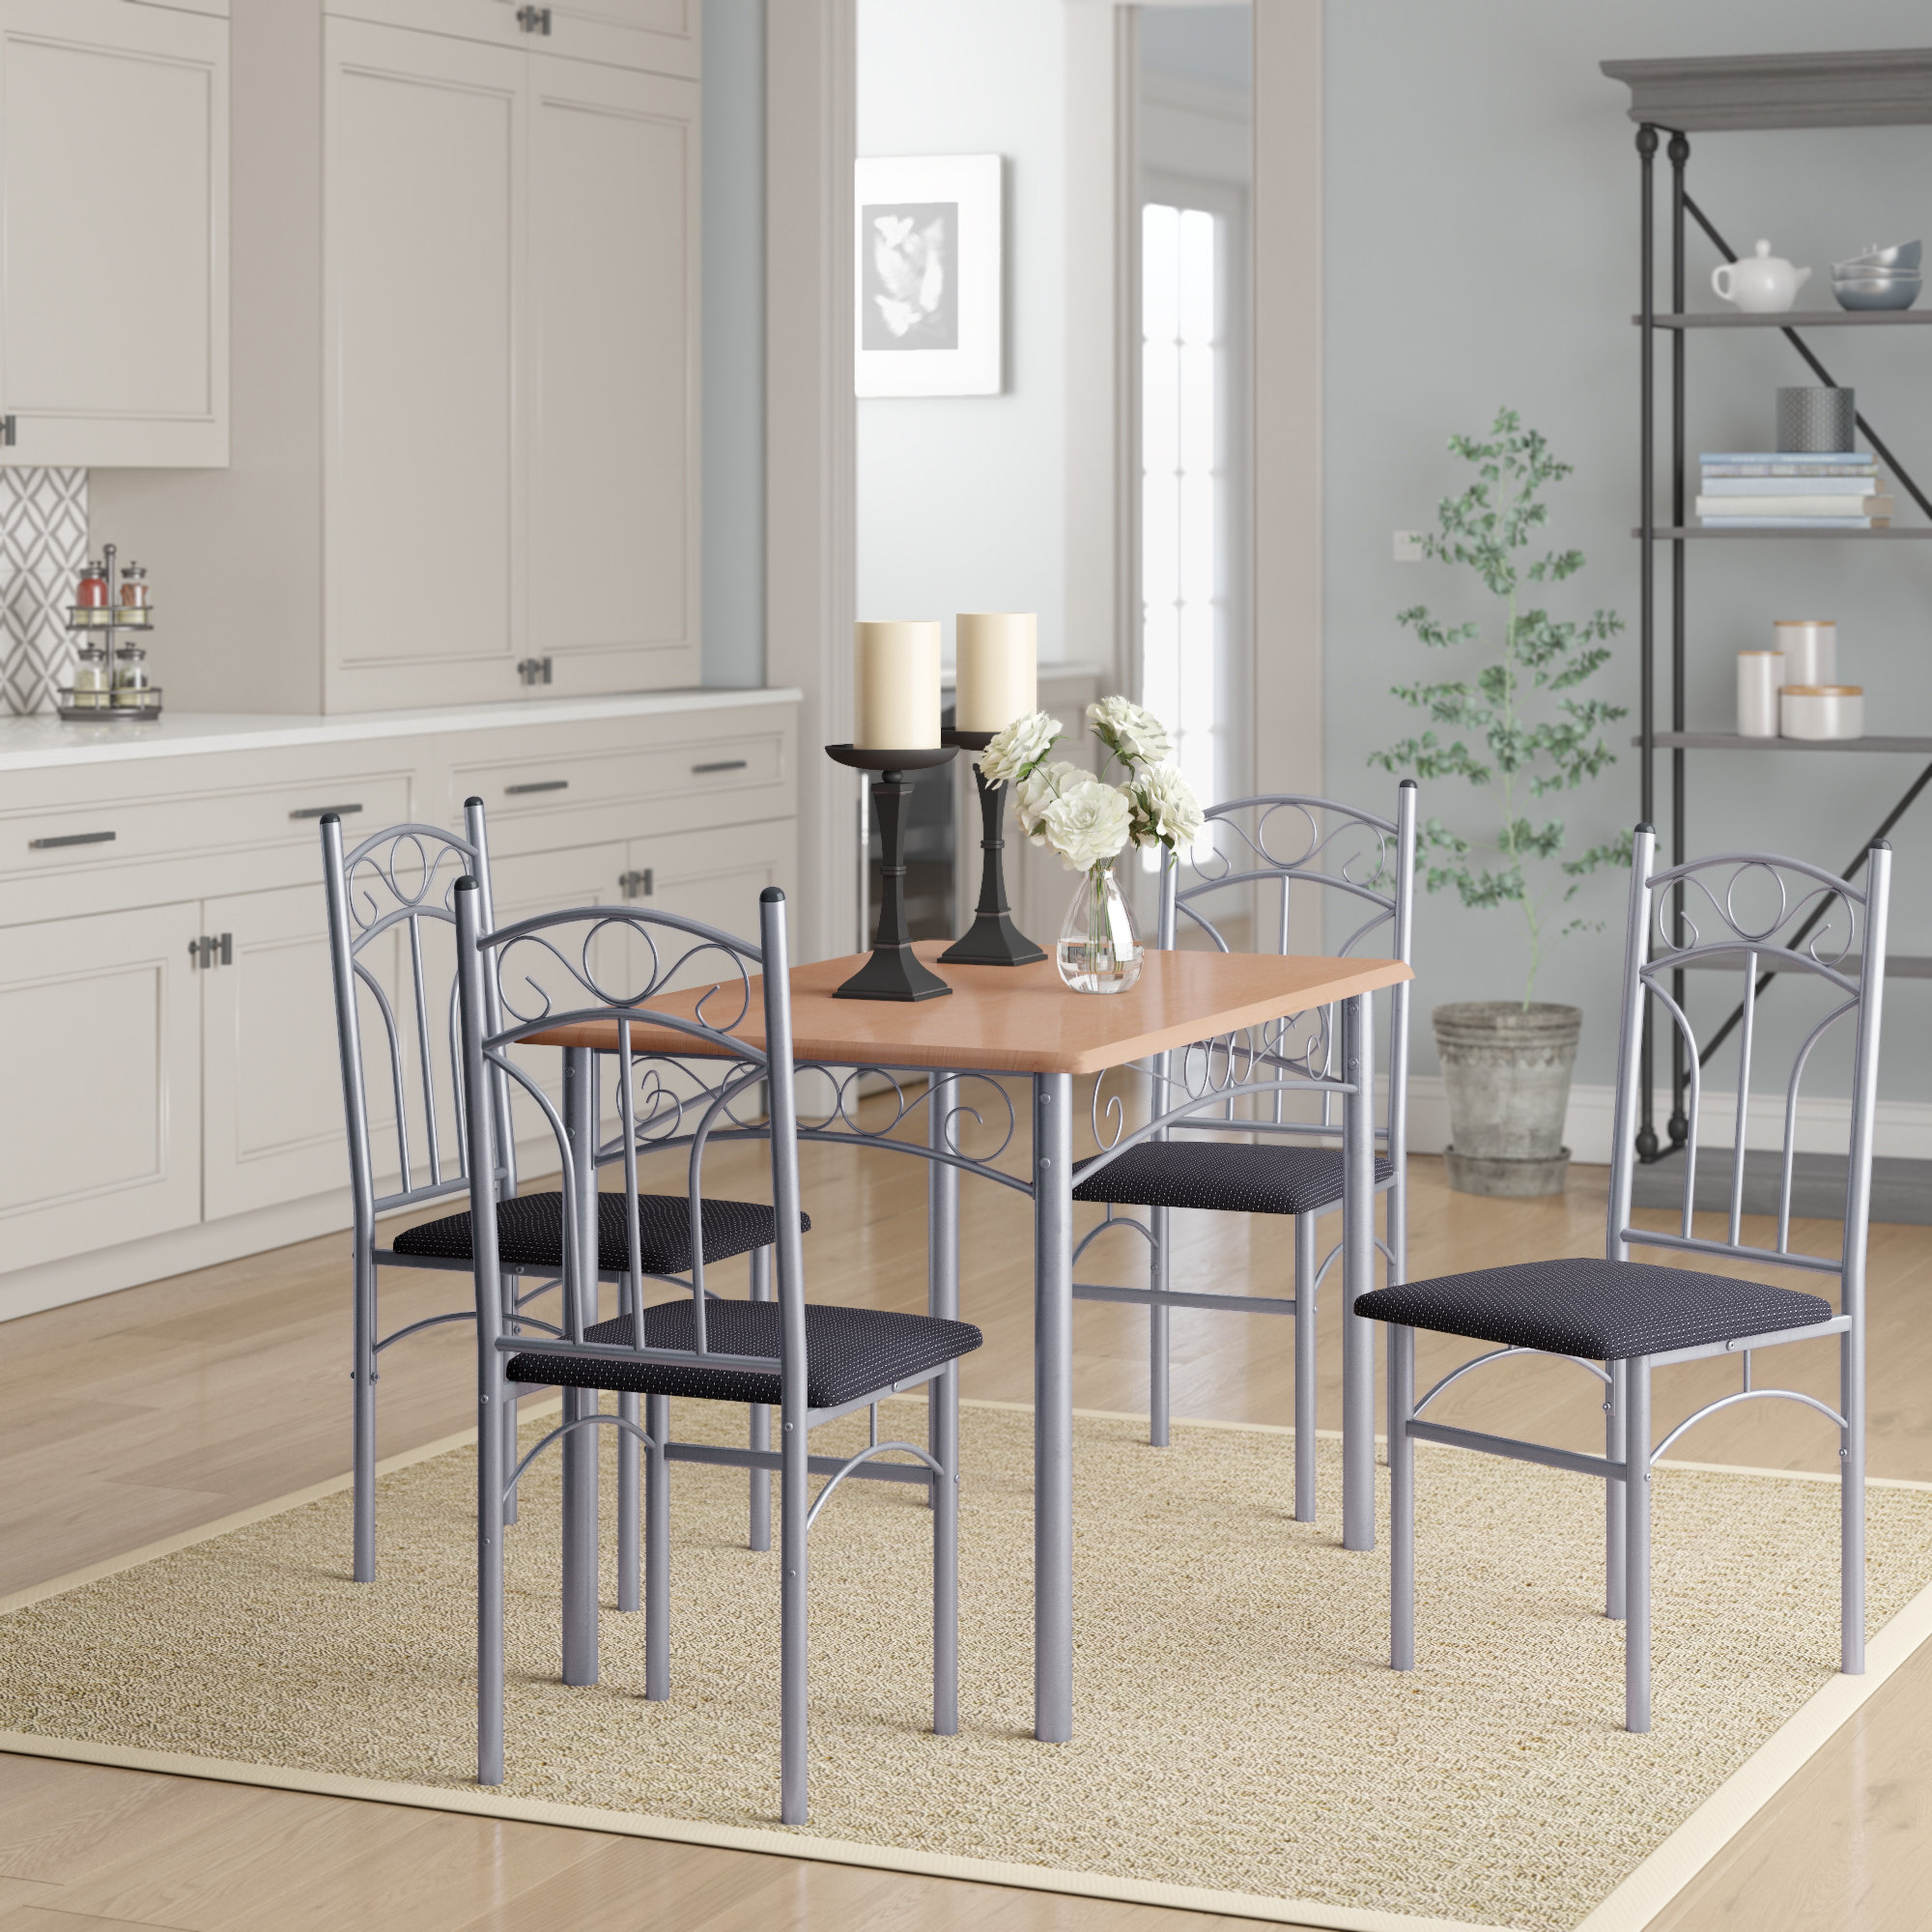 Turnalar 5 Piece Dining Set With Most Current Stouferberg 5 Piece Dining Sets (View 19 of 20)